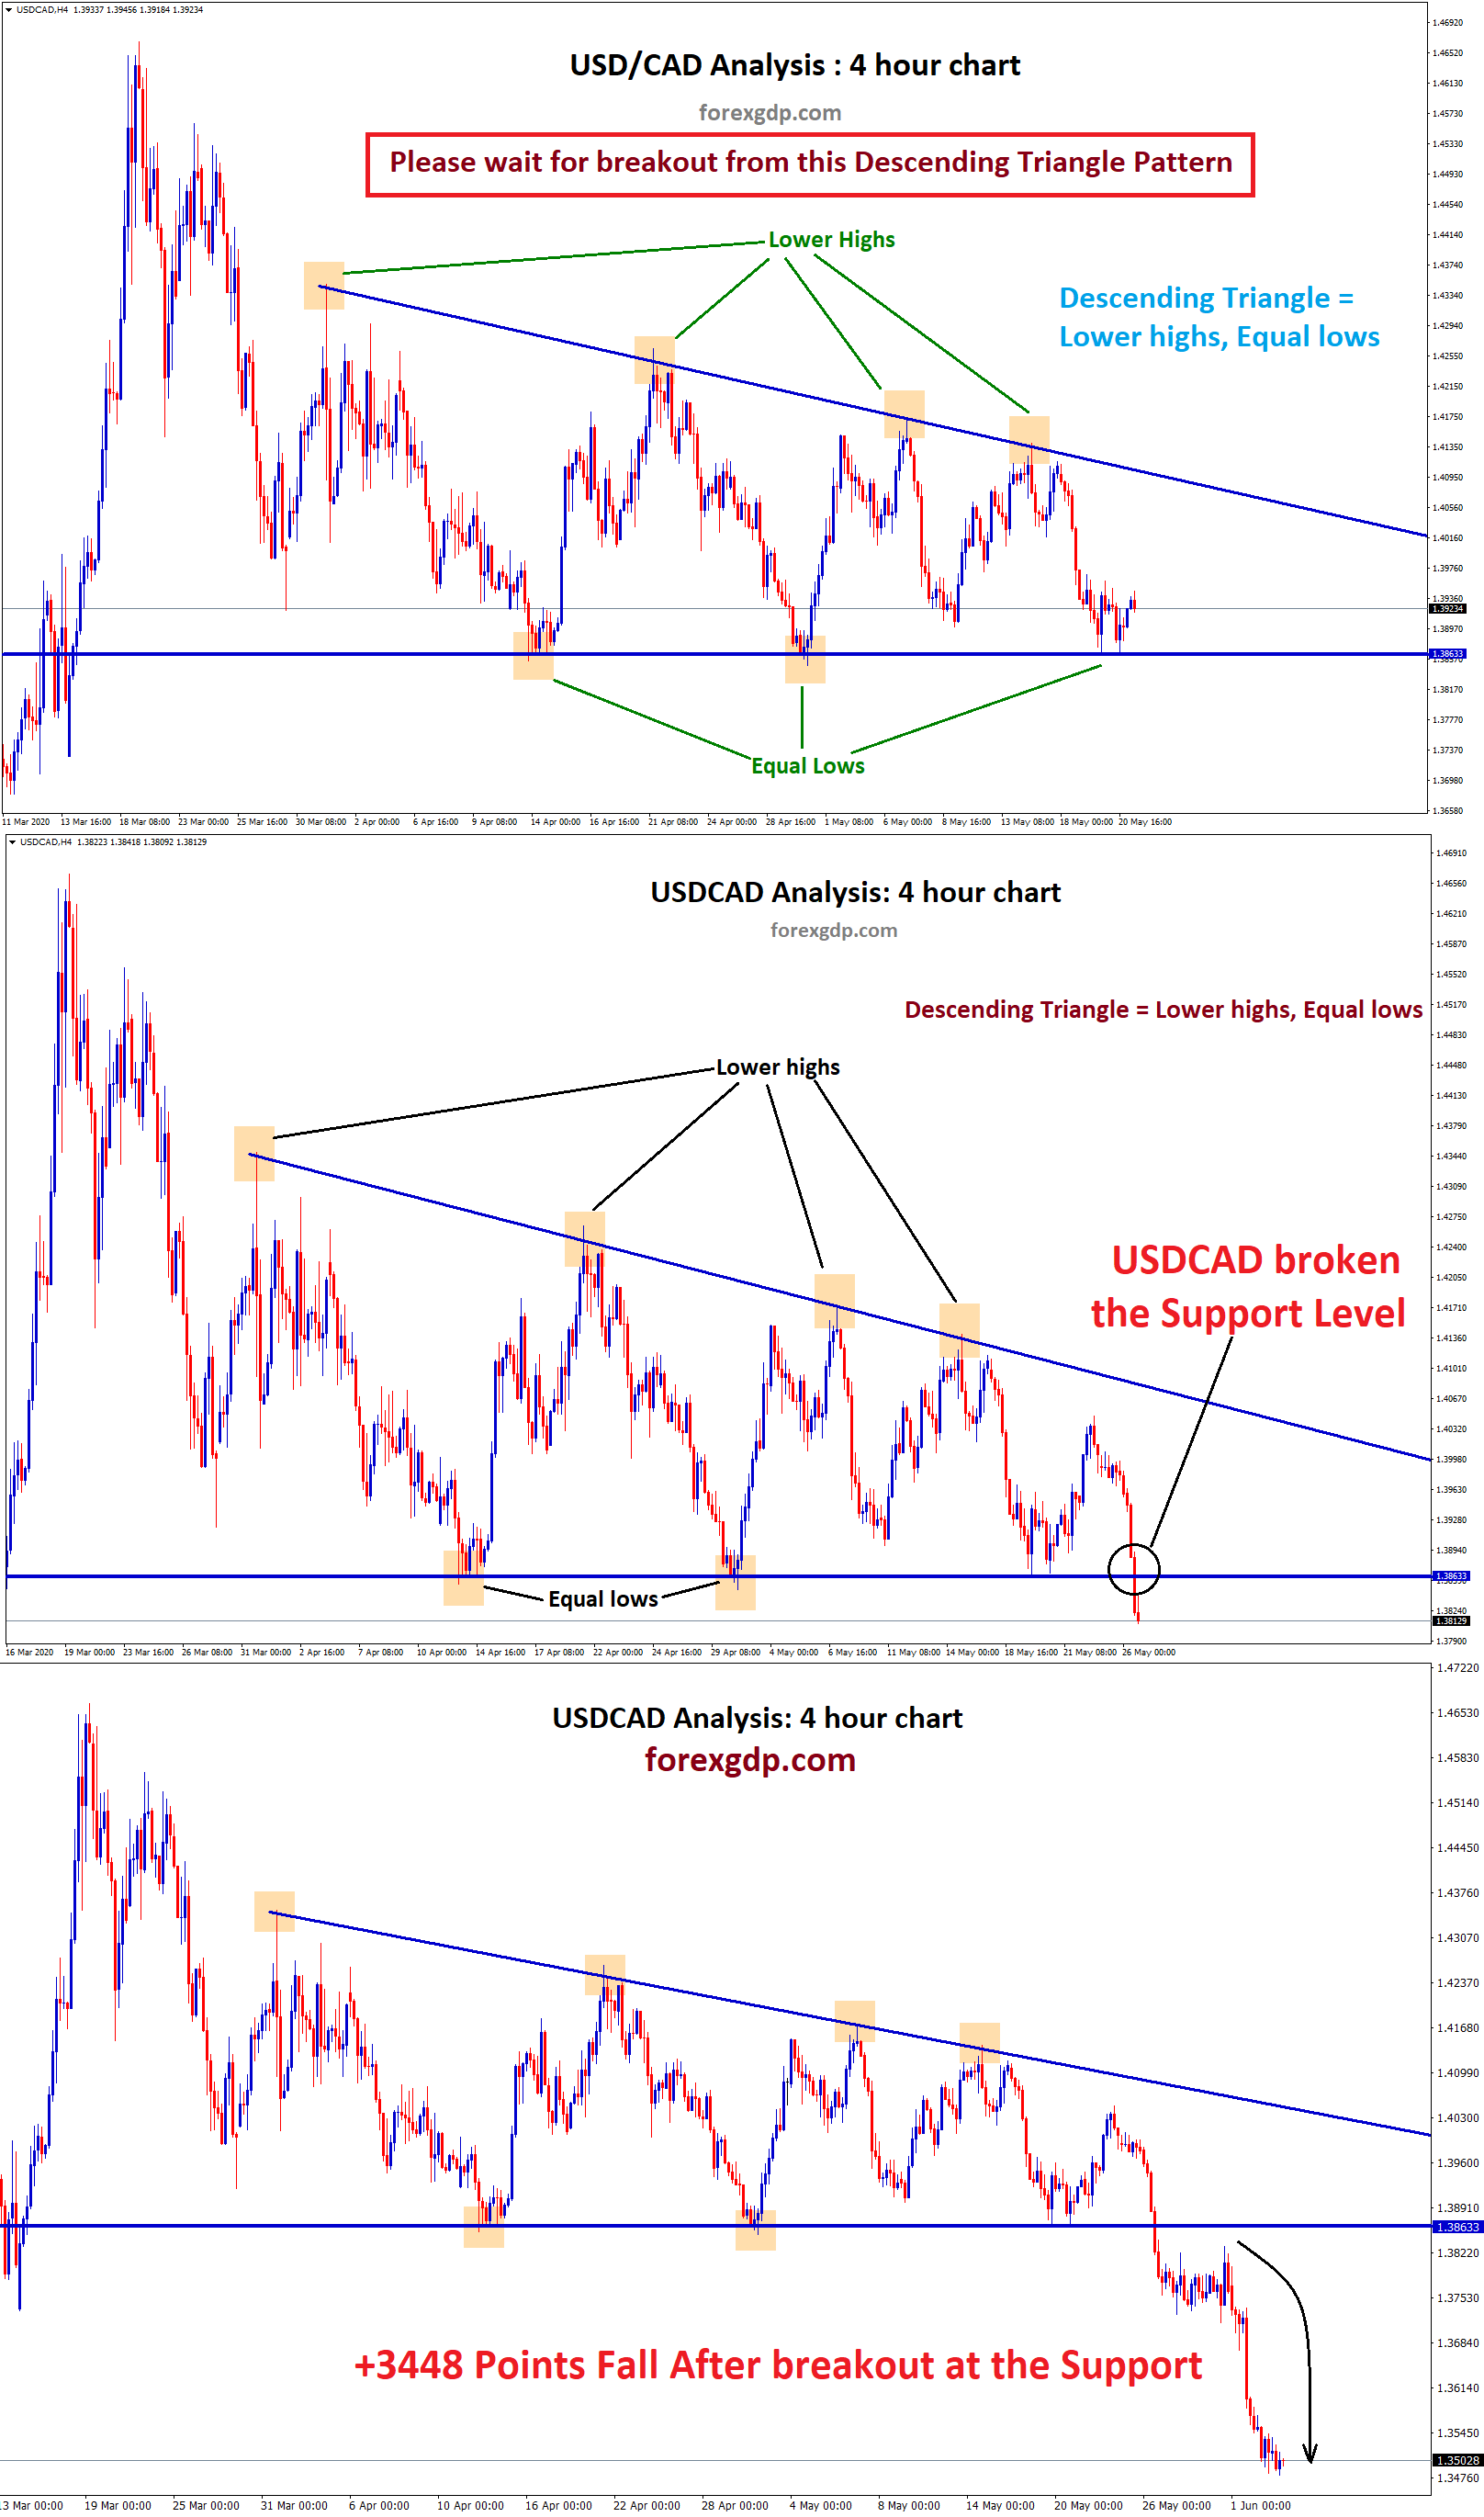 USDCAD price fall after breakout at support level of descending Triangle